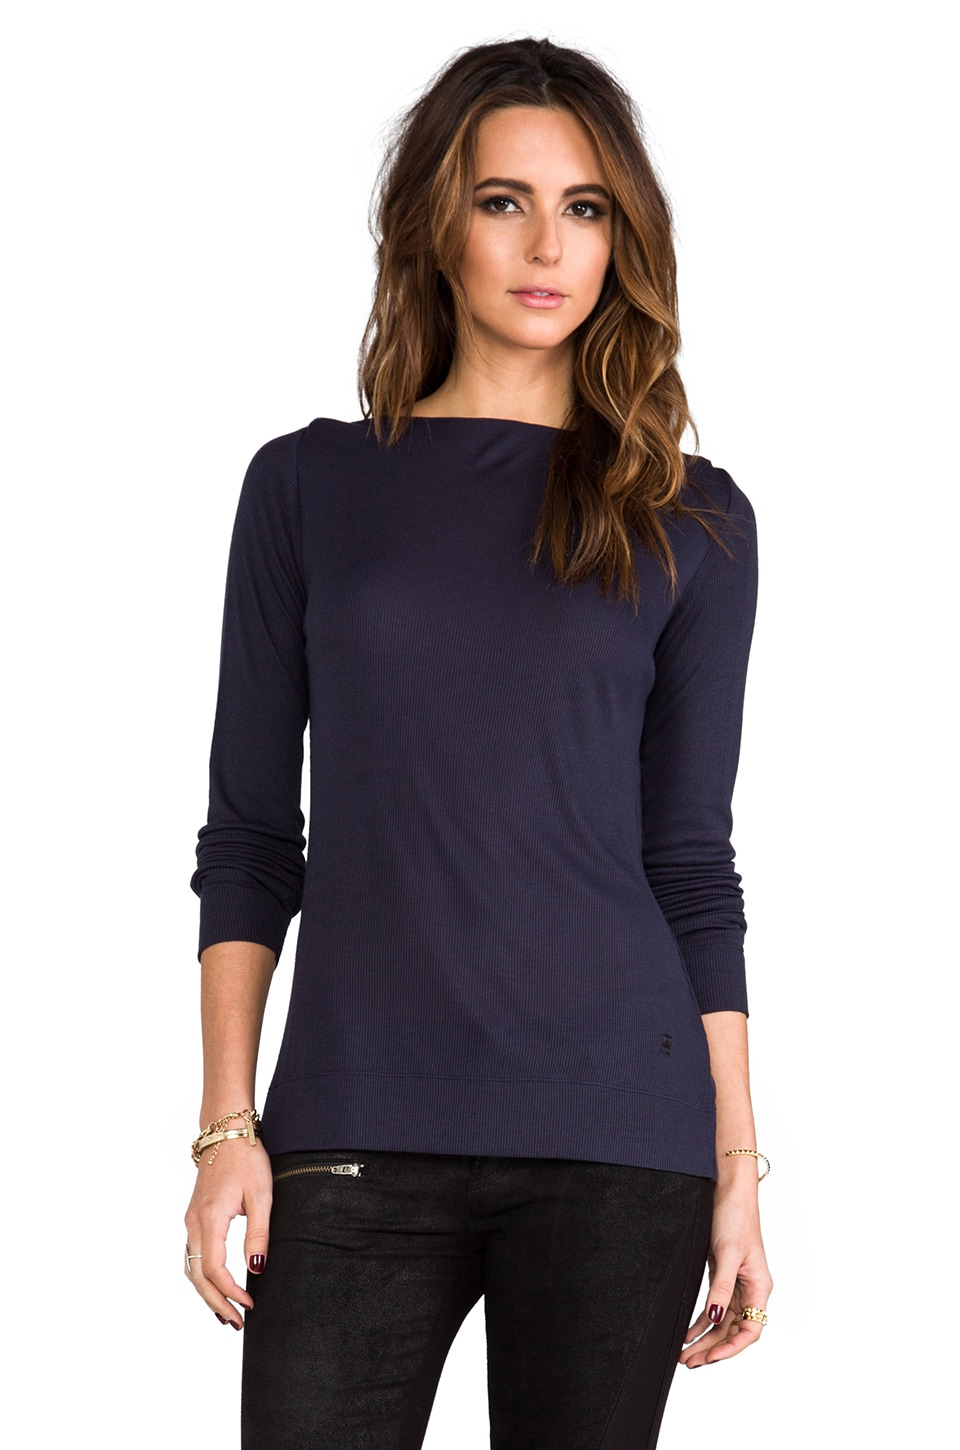 G-Star Flores Boatneck in Naval Blue